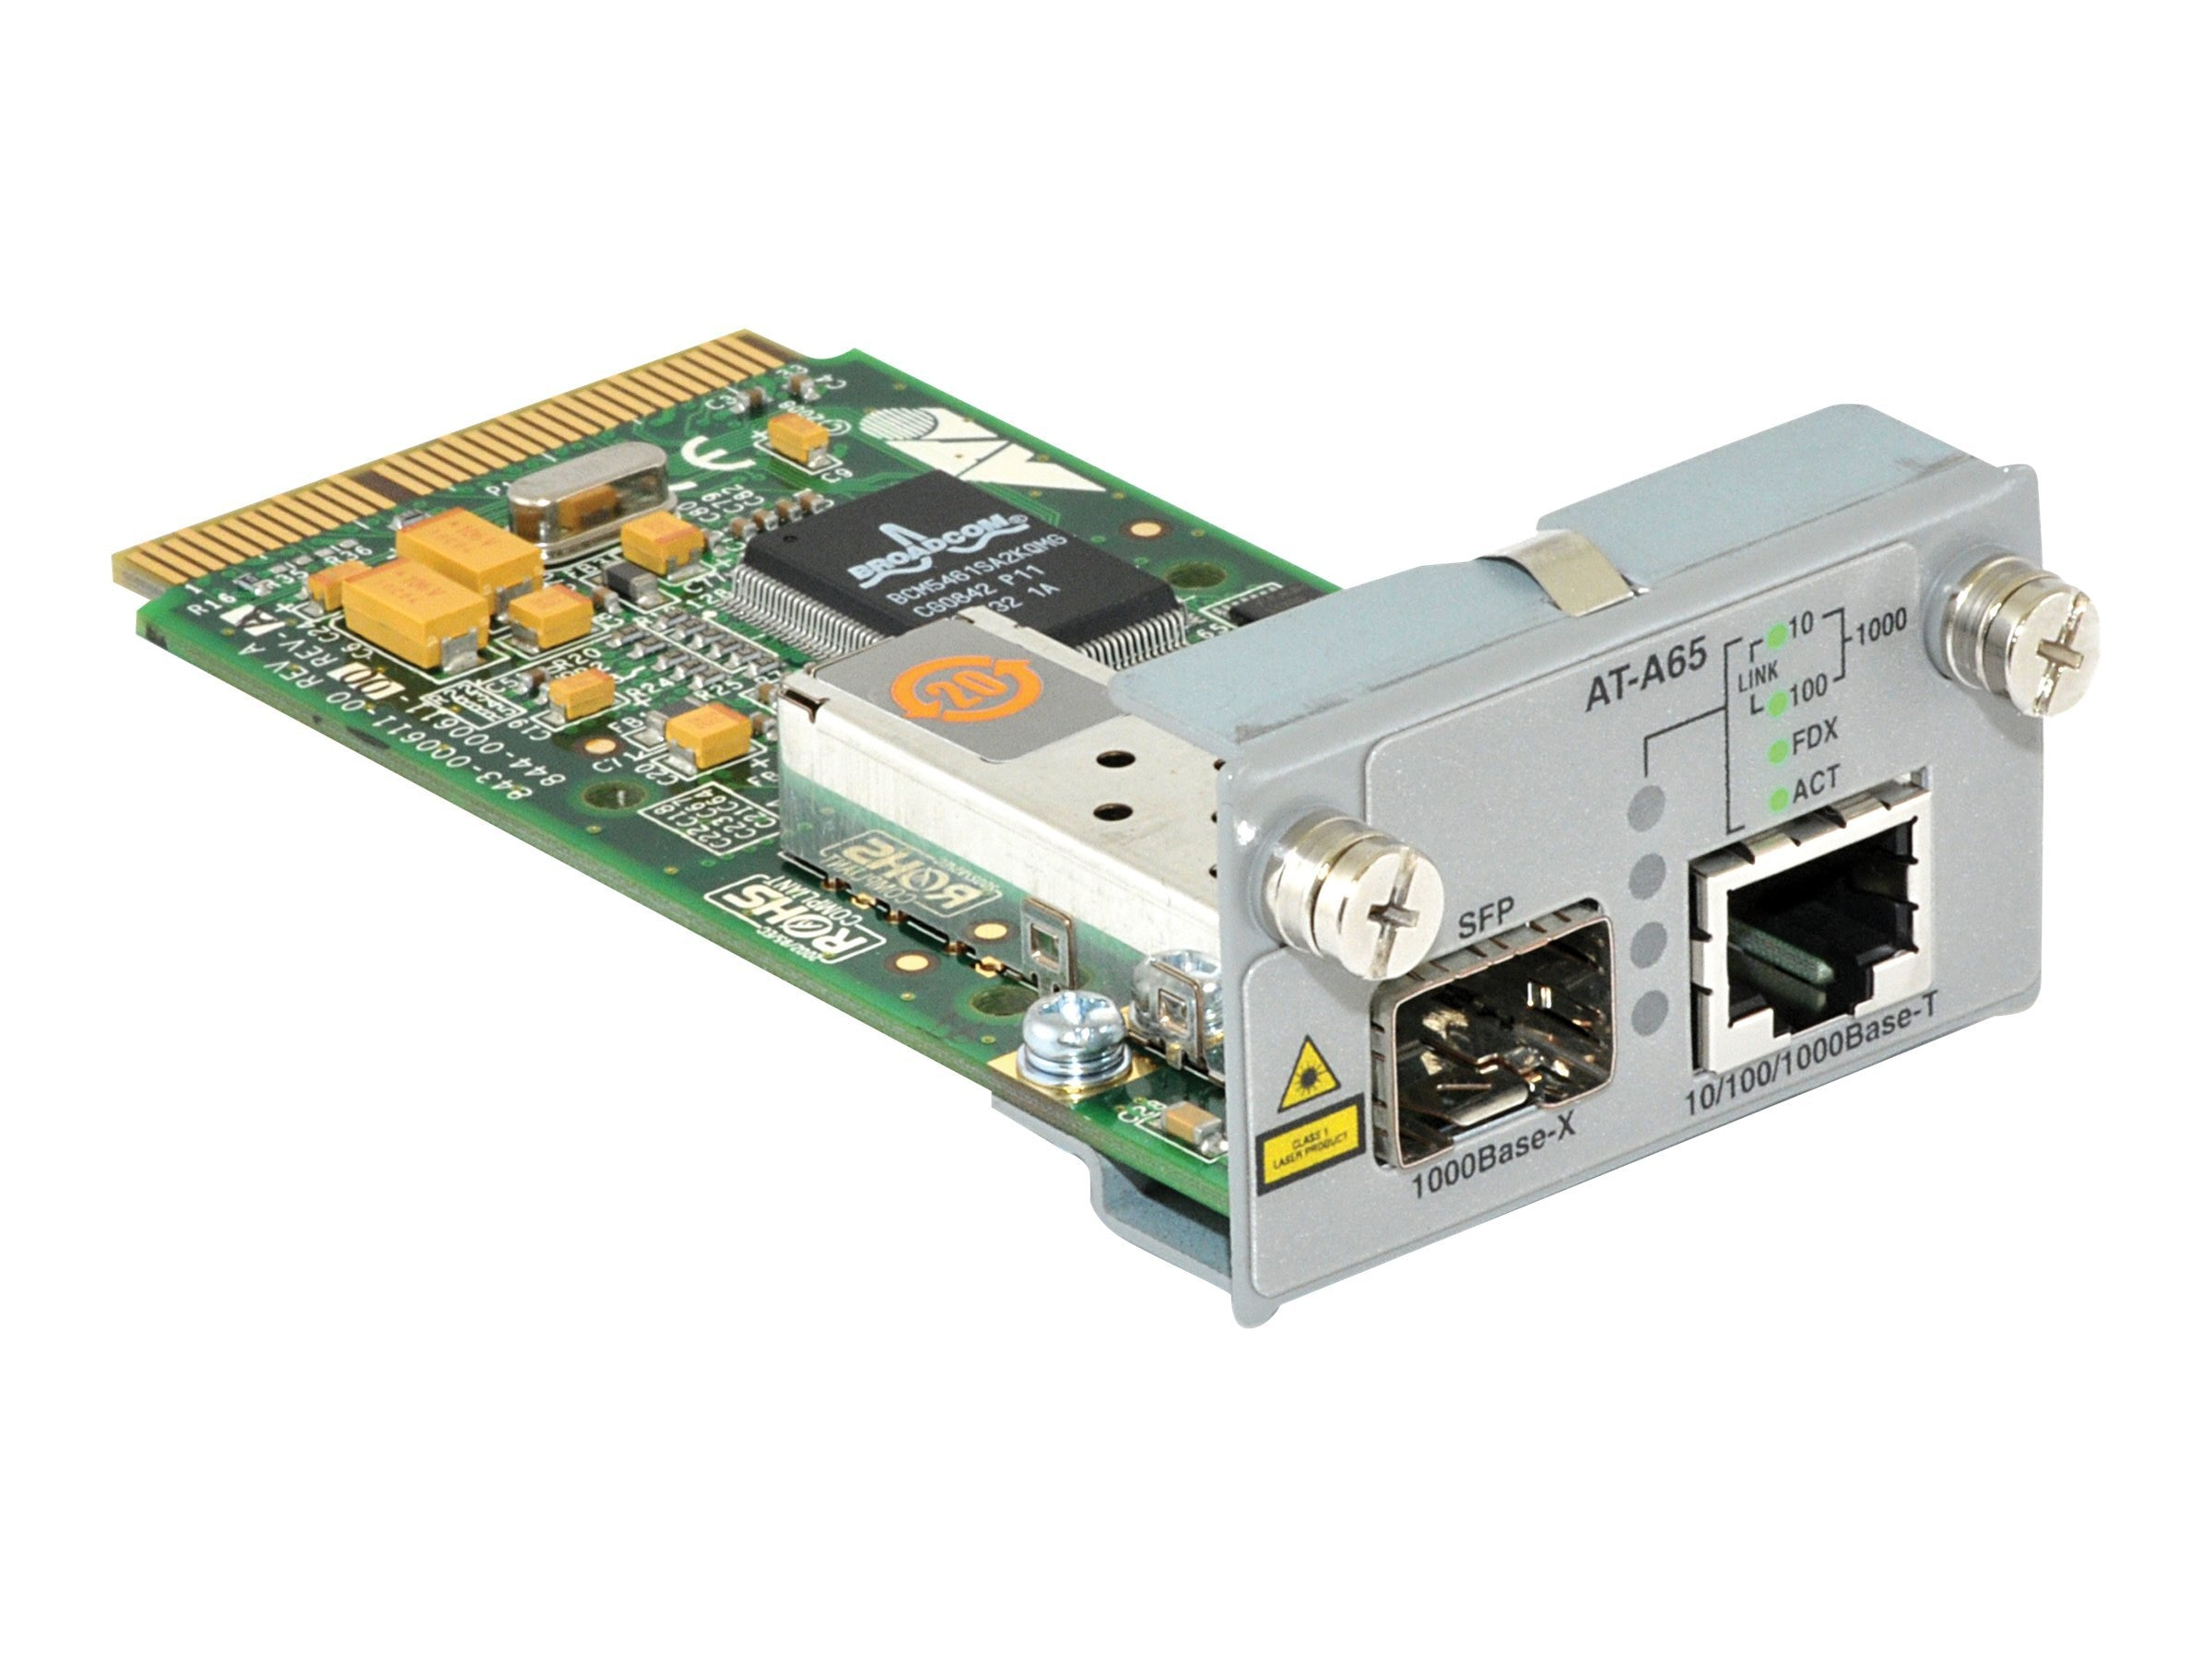 Allied Telesis 10 100 1000T SFP Combo-Uplink Module 8600 Series, AT-A65, 11238268, Network Device Modules & Accessories